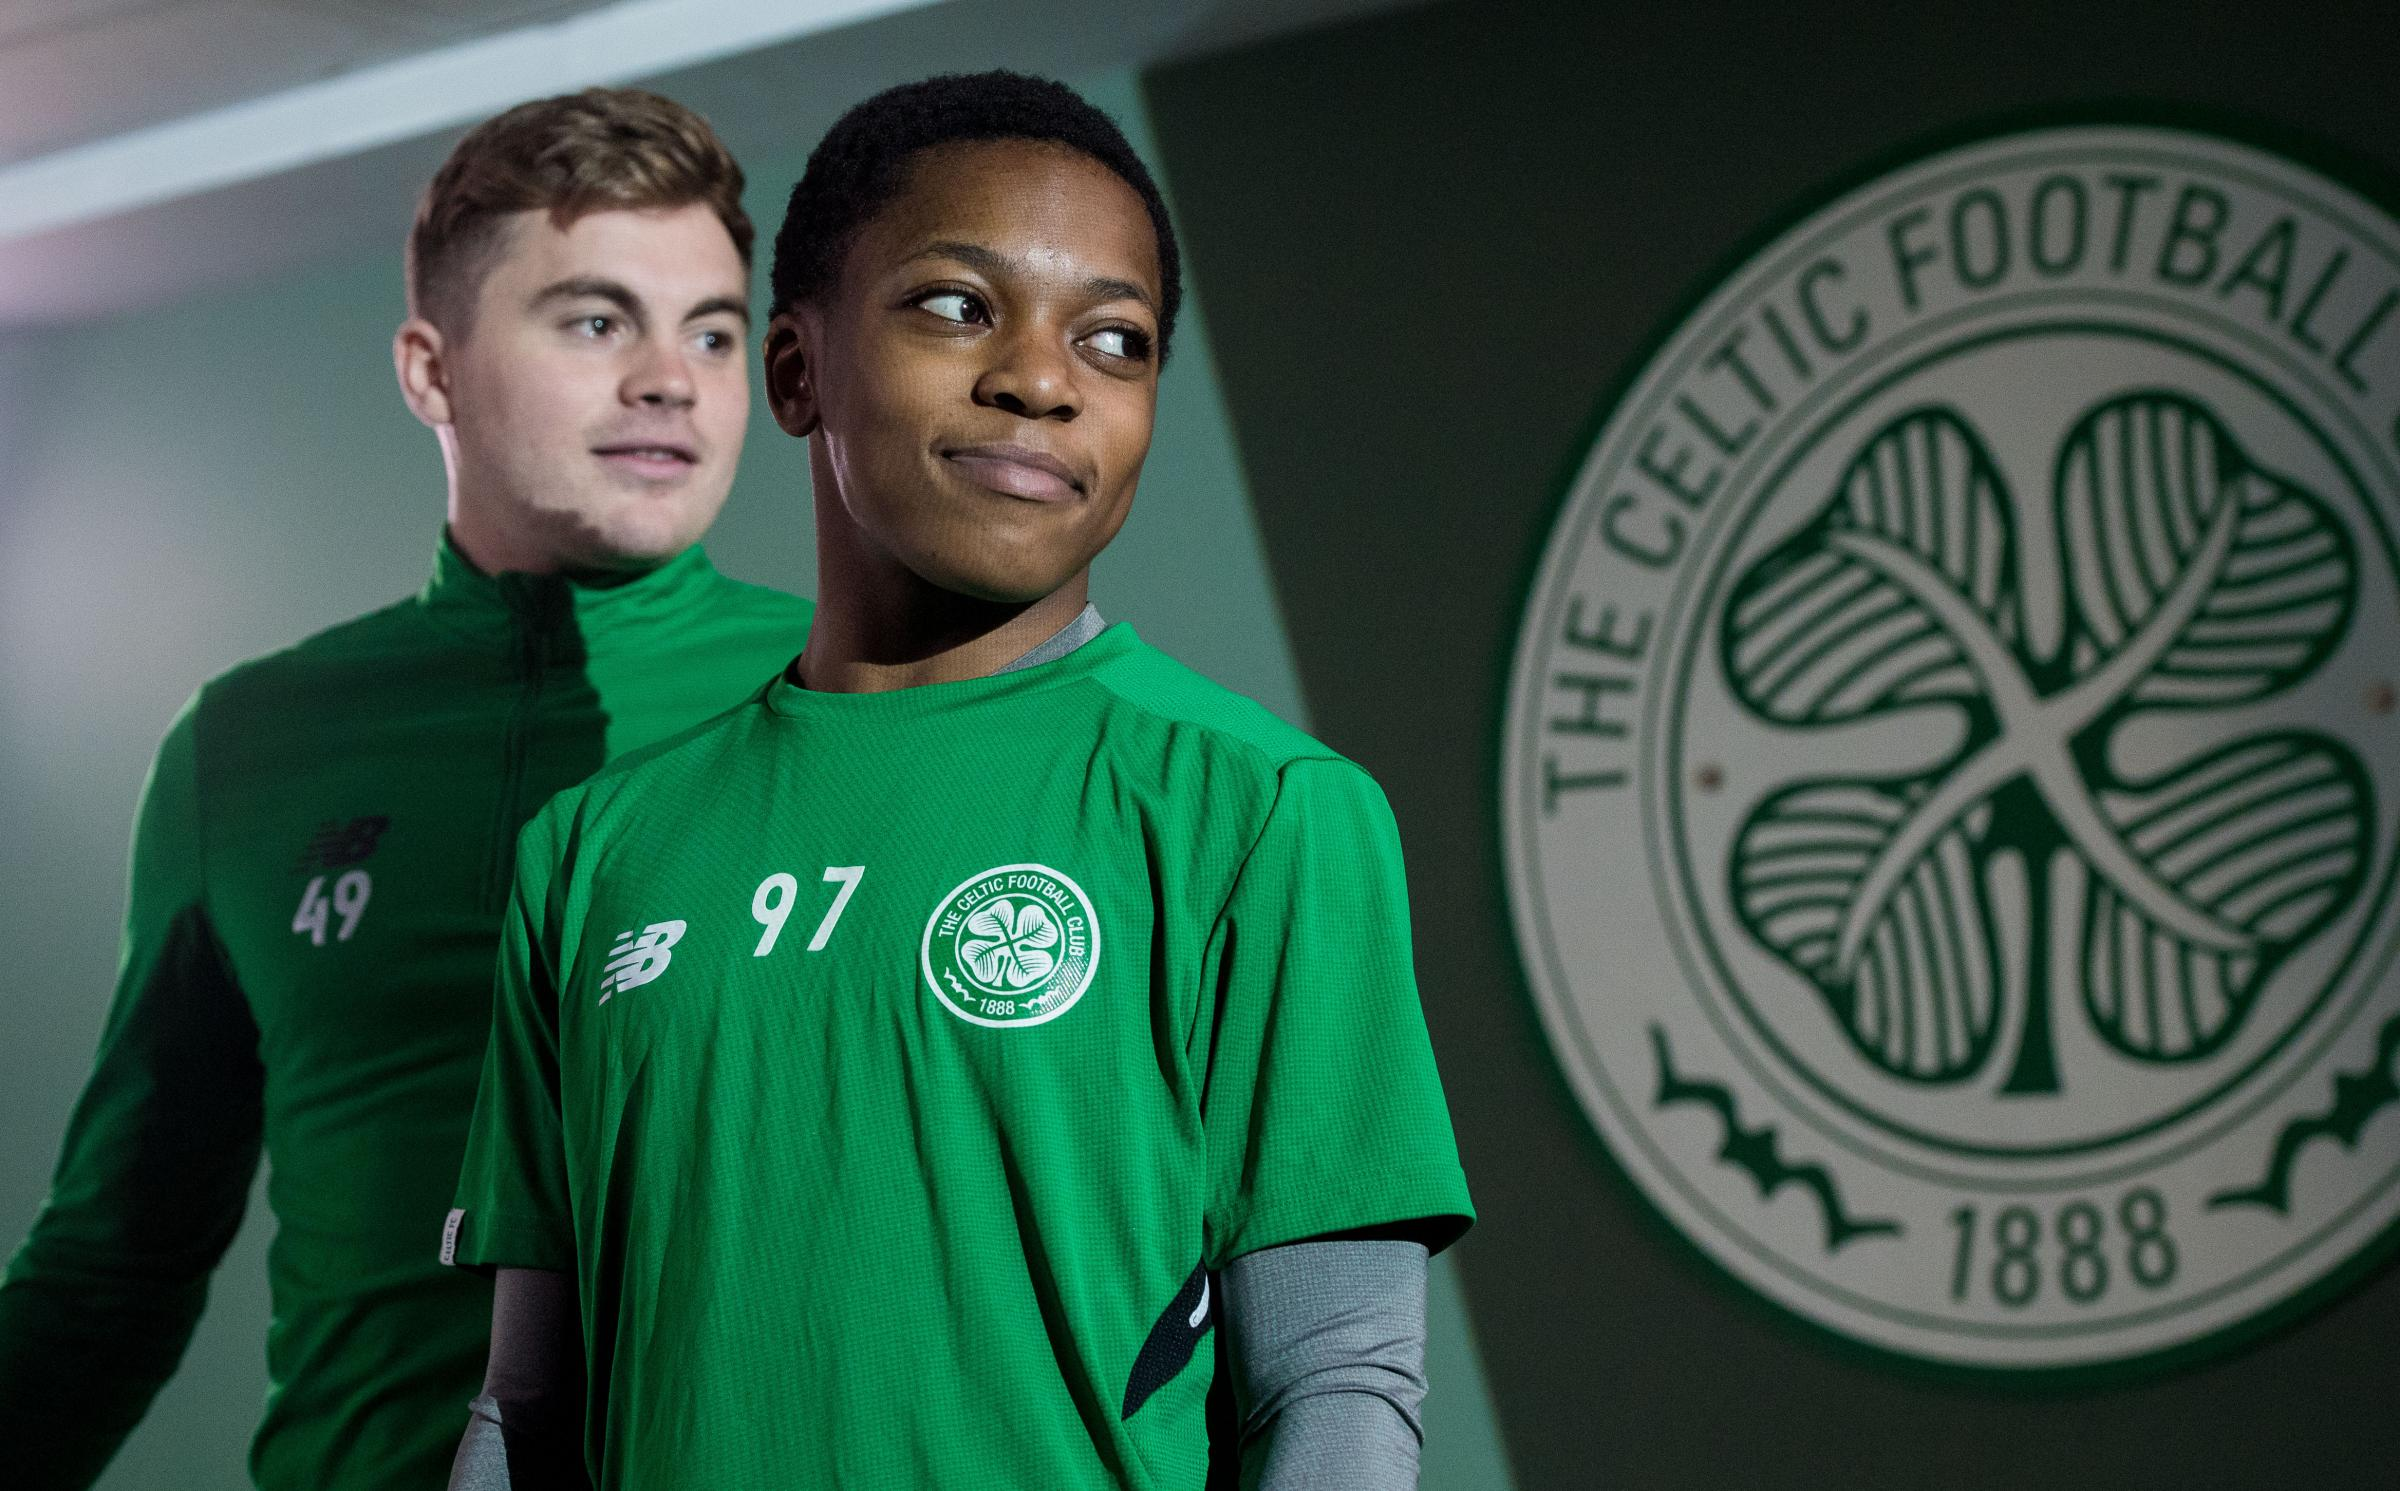 14/03/18. LENNOXTOWN. Celtic launch their season ticket advert, One Club since 1888 . .Pictured - James Forrest and Karamoko Dembele.